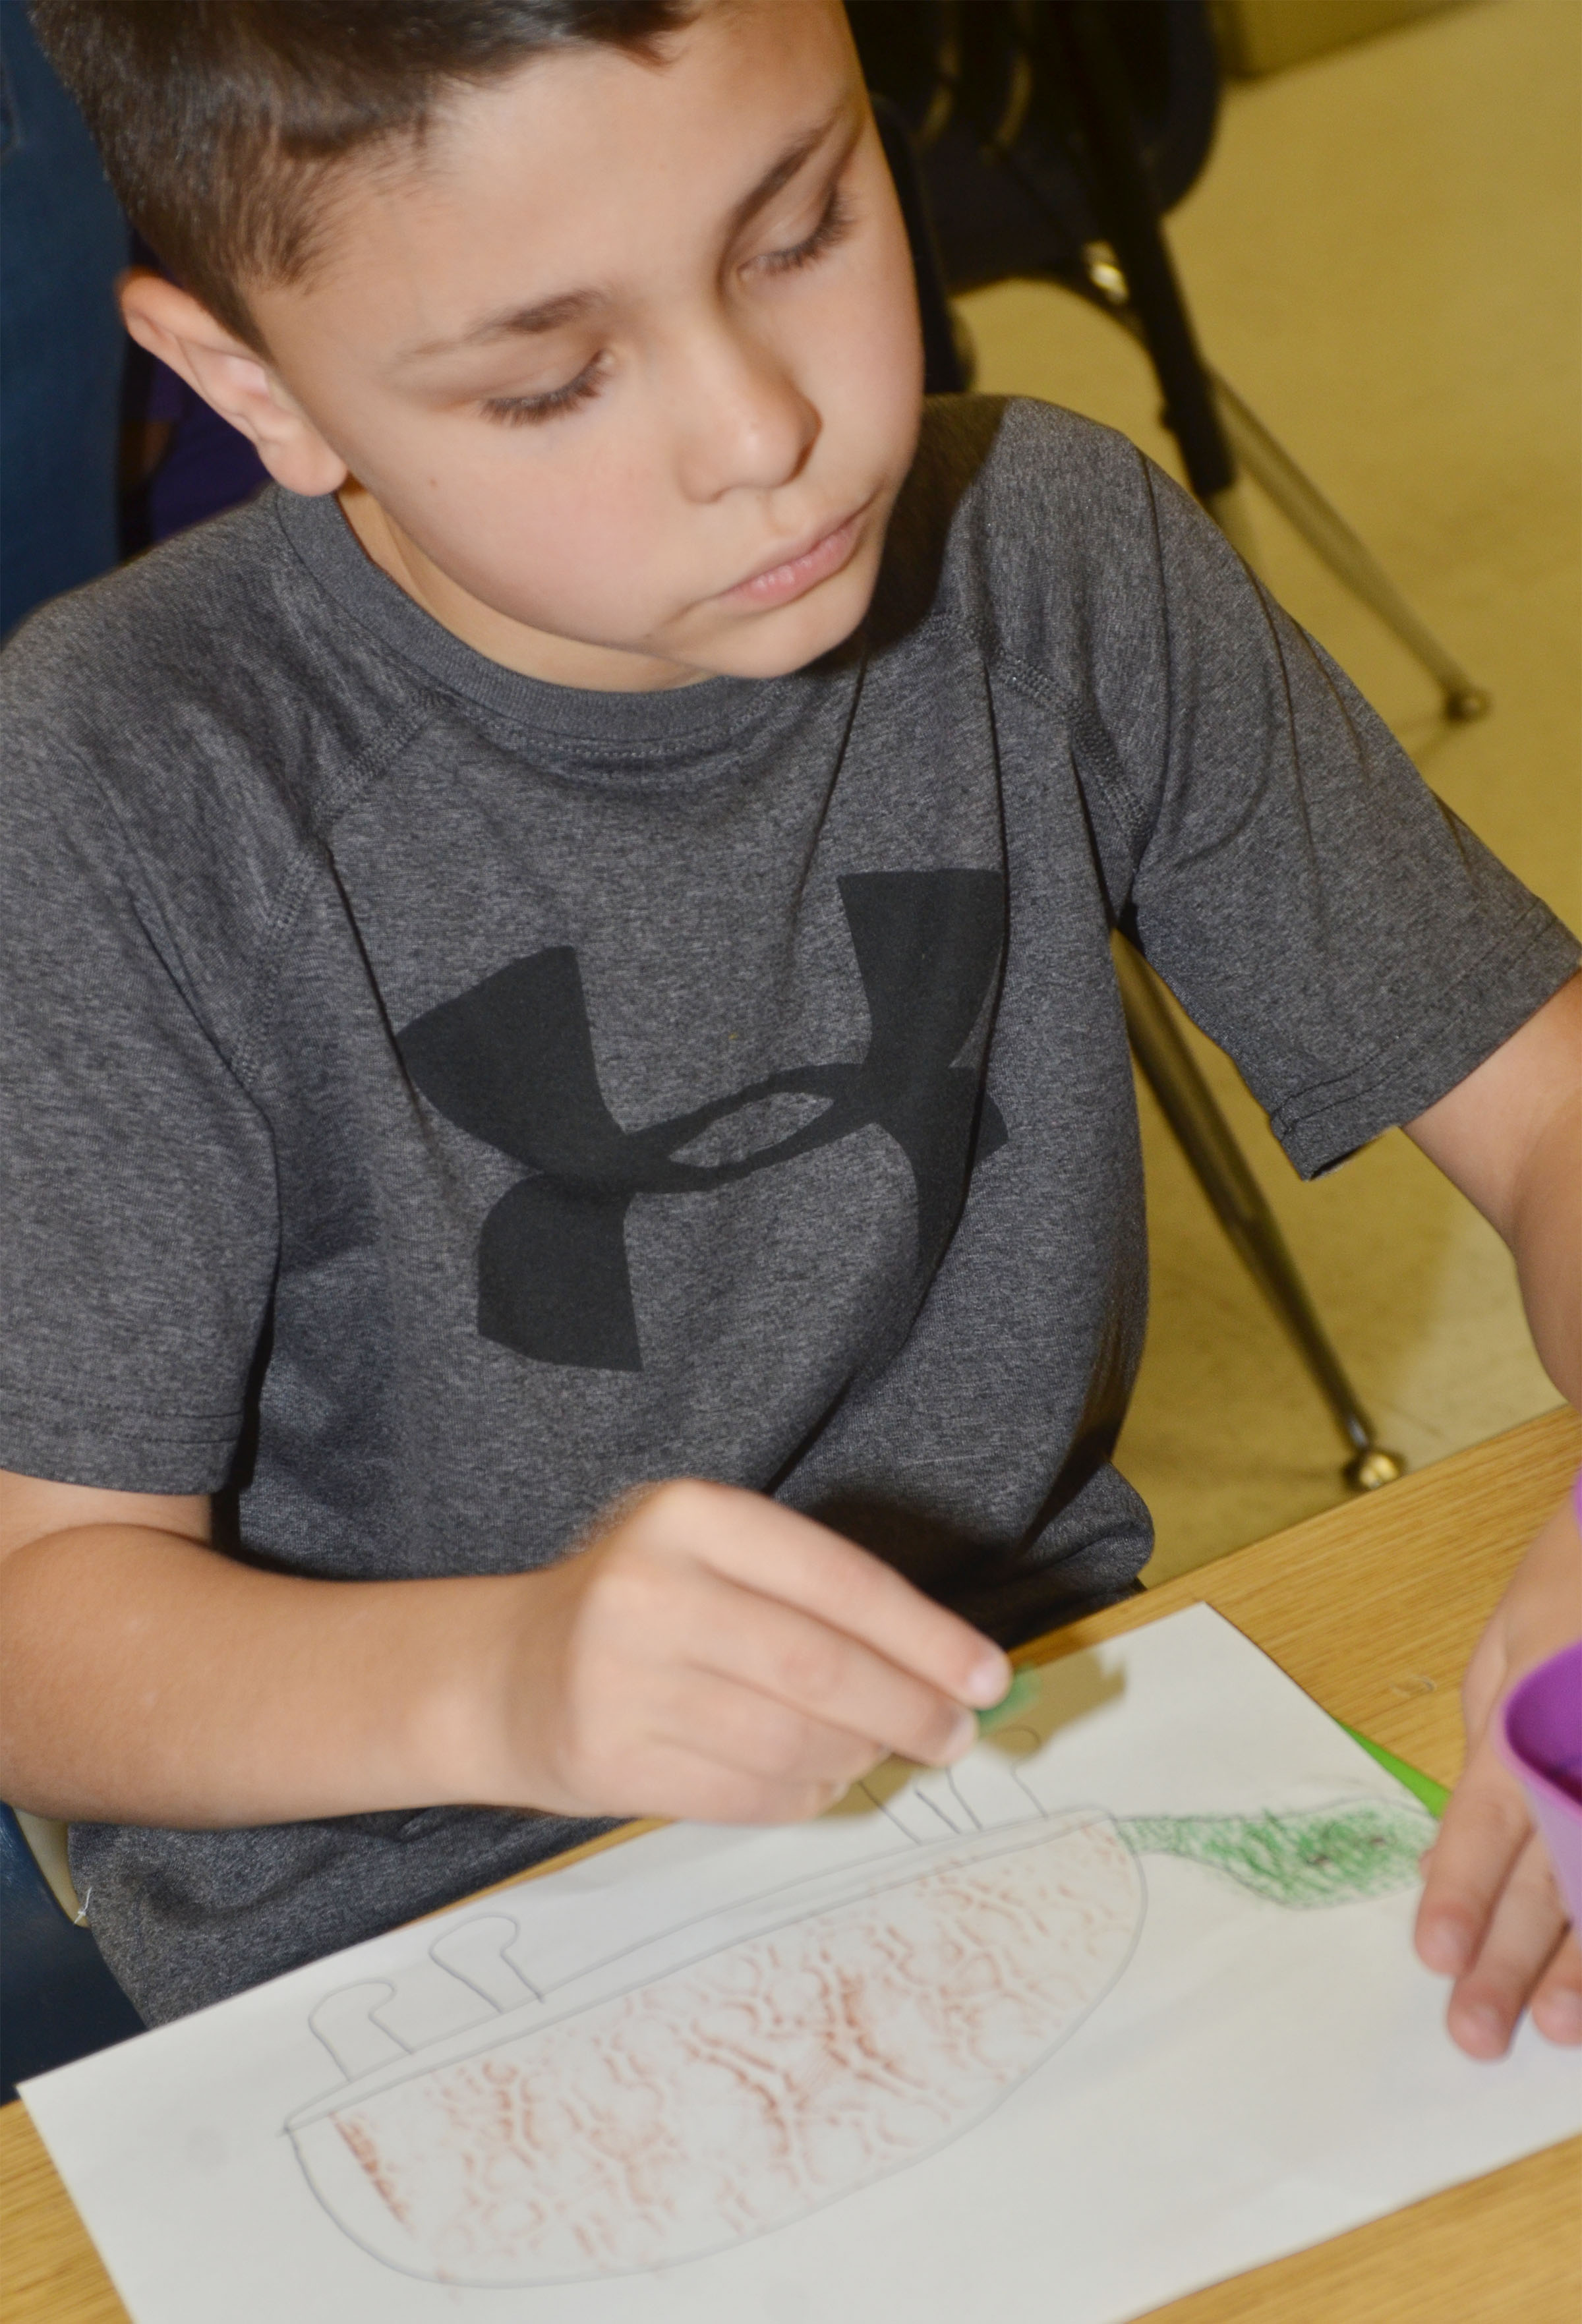 CES second-grader Braygon Noegel colors his turtle drawing.